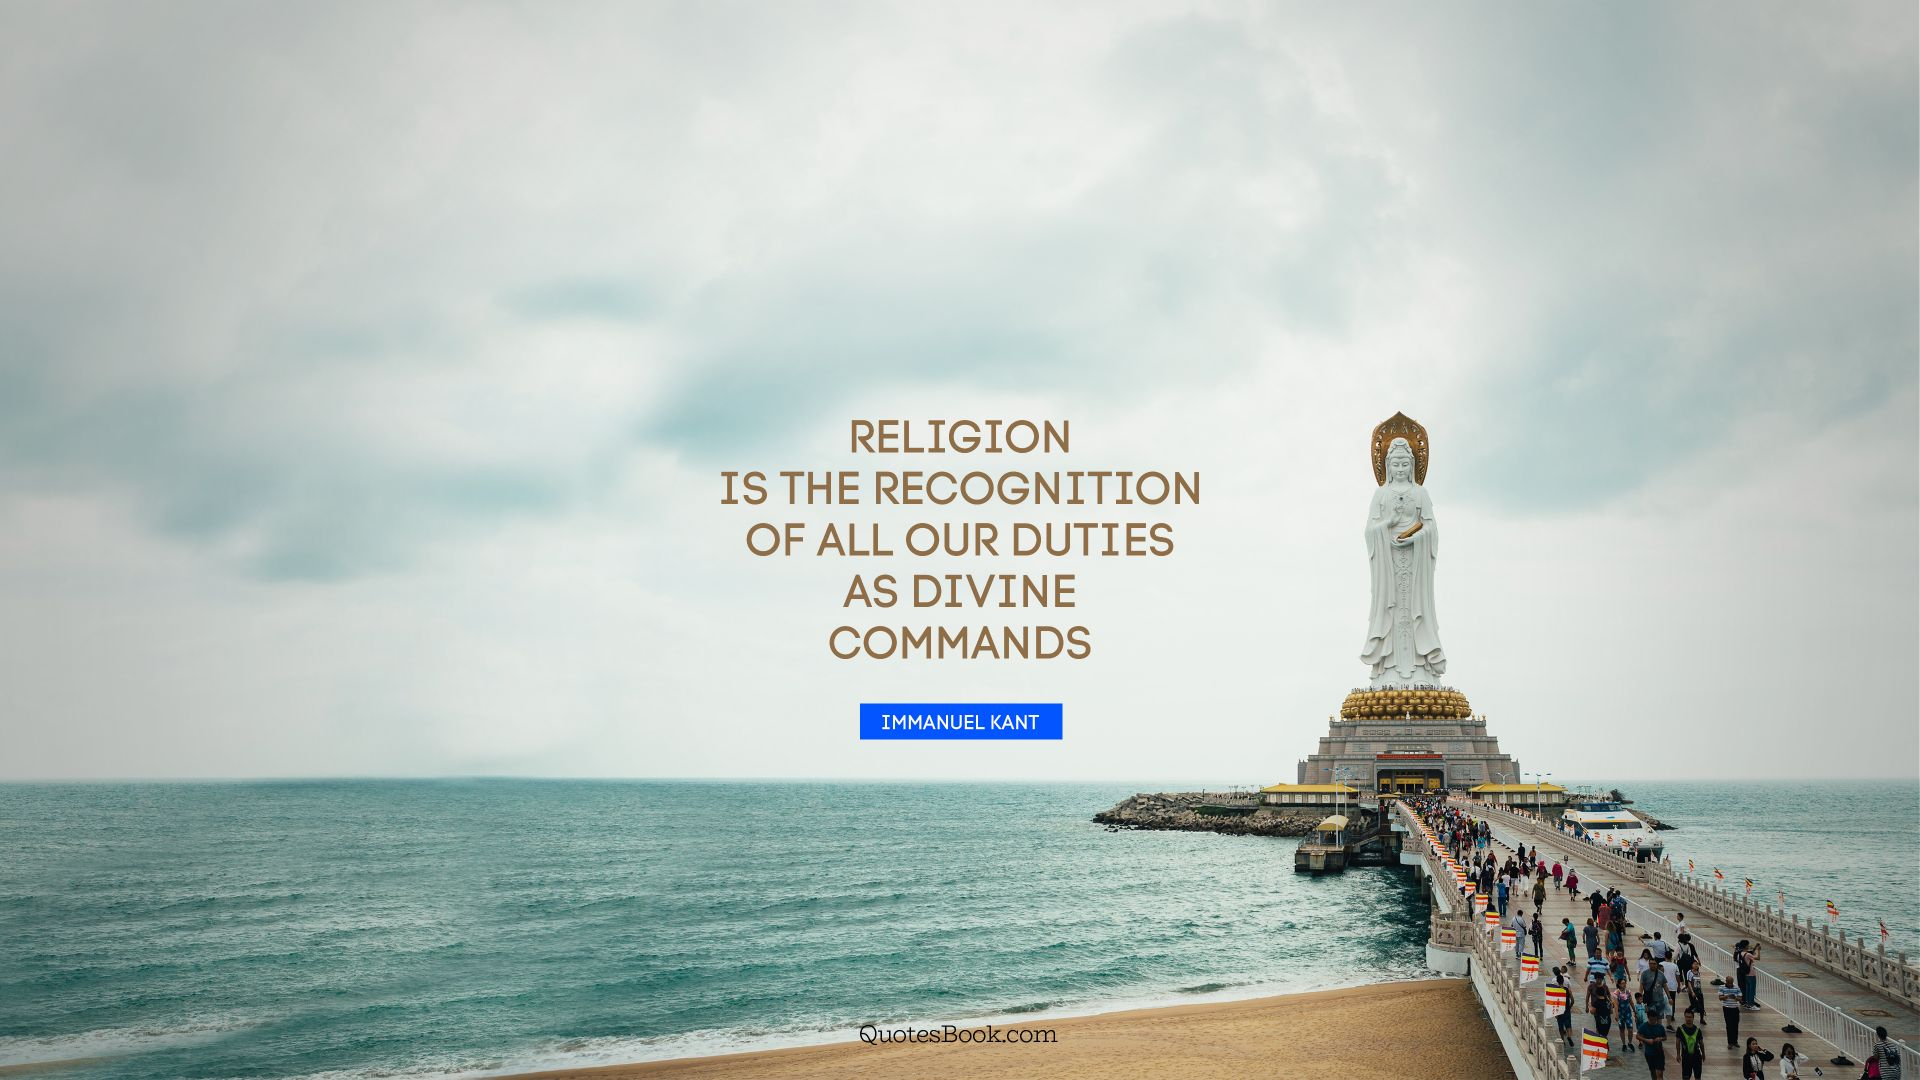 Religion is the recognition of all our duties as divine commands. - Quote by Immanuel Kant